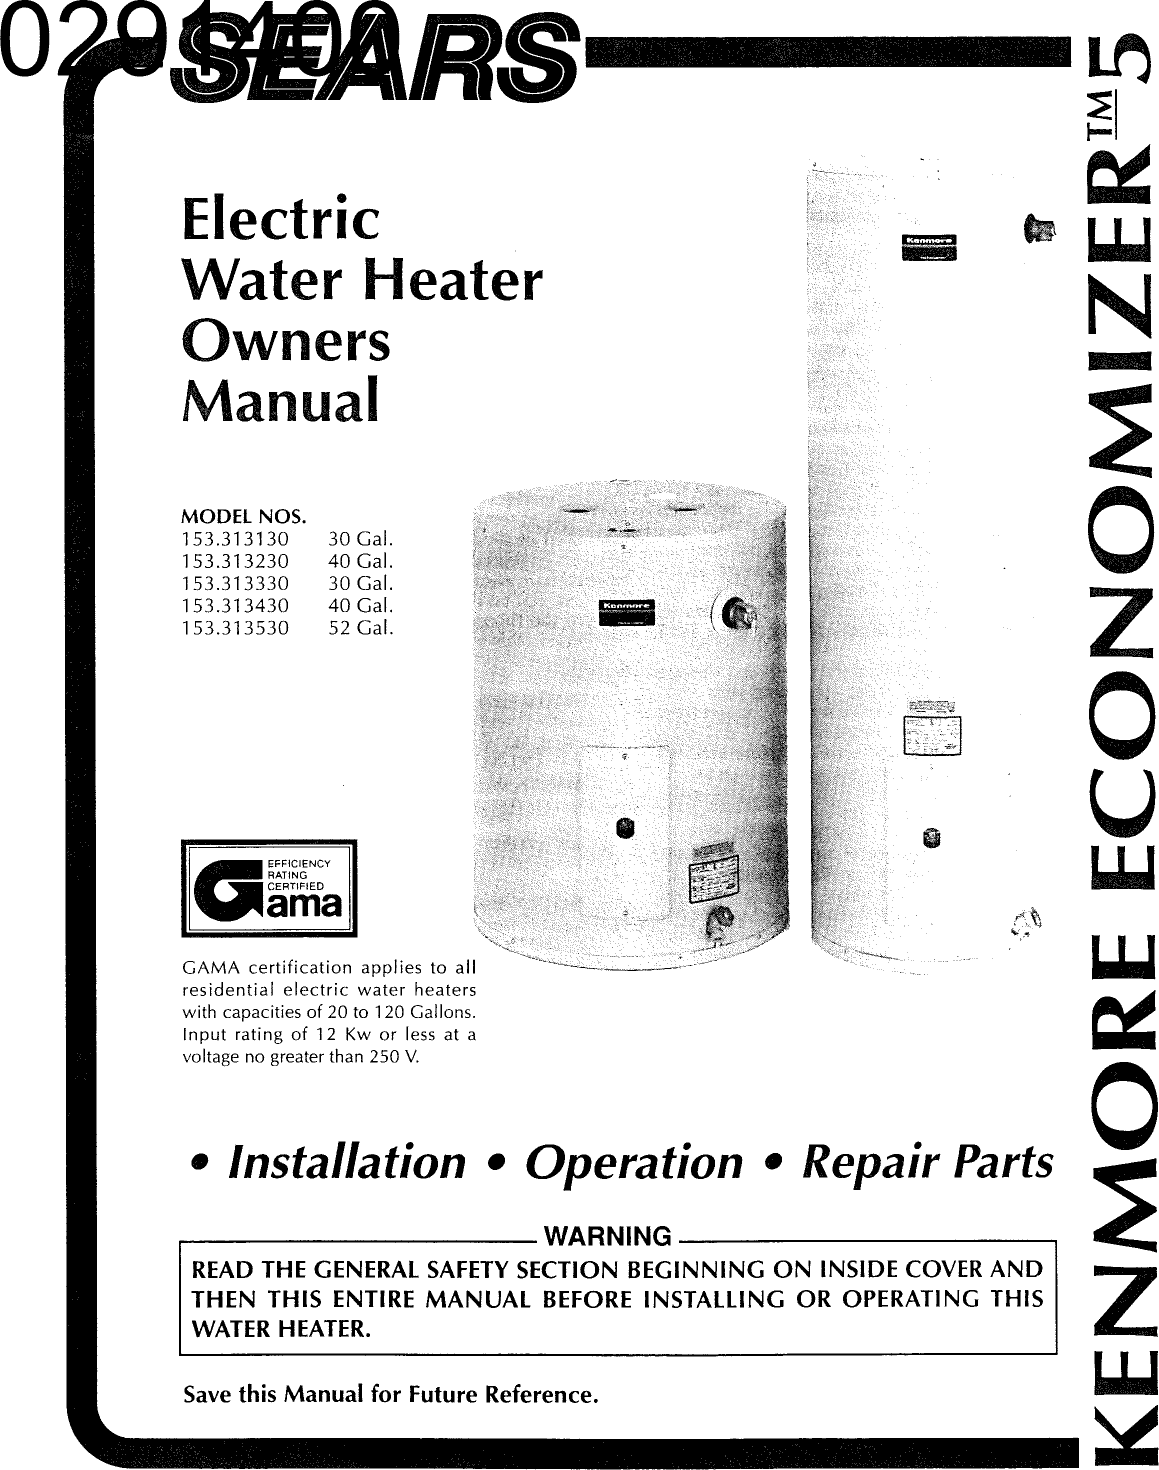 Kenmore 153313130 User Manual Electric Water Heater Manuals And Residential Heaters Guides L1004600